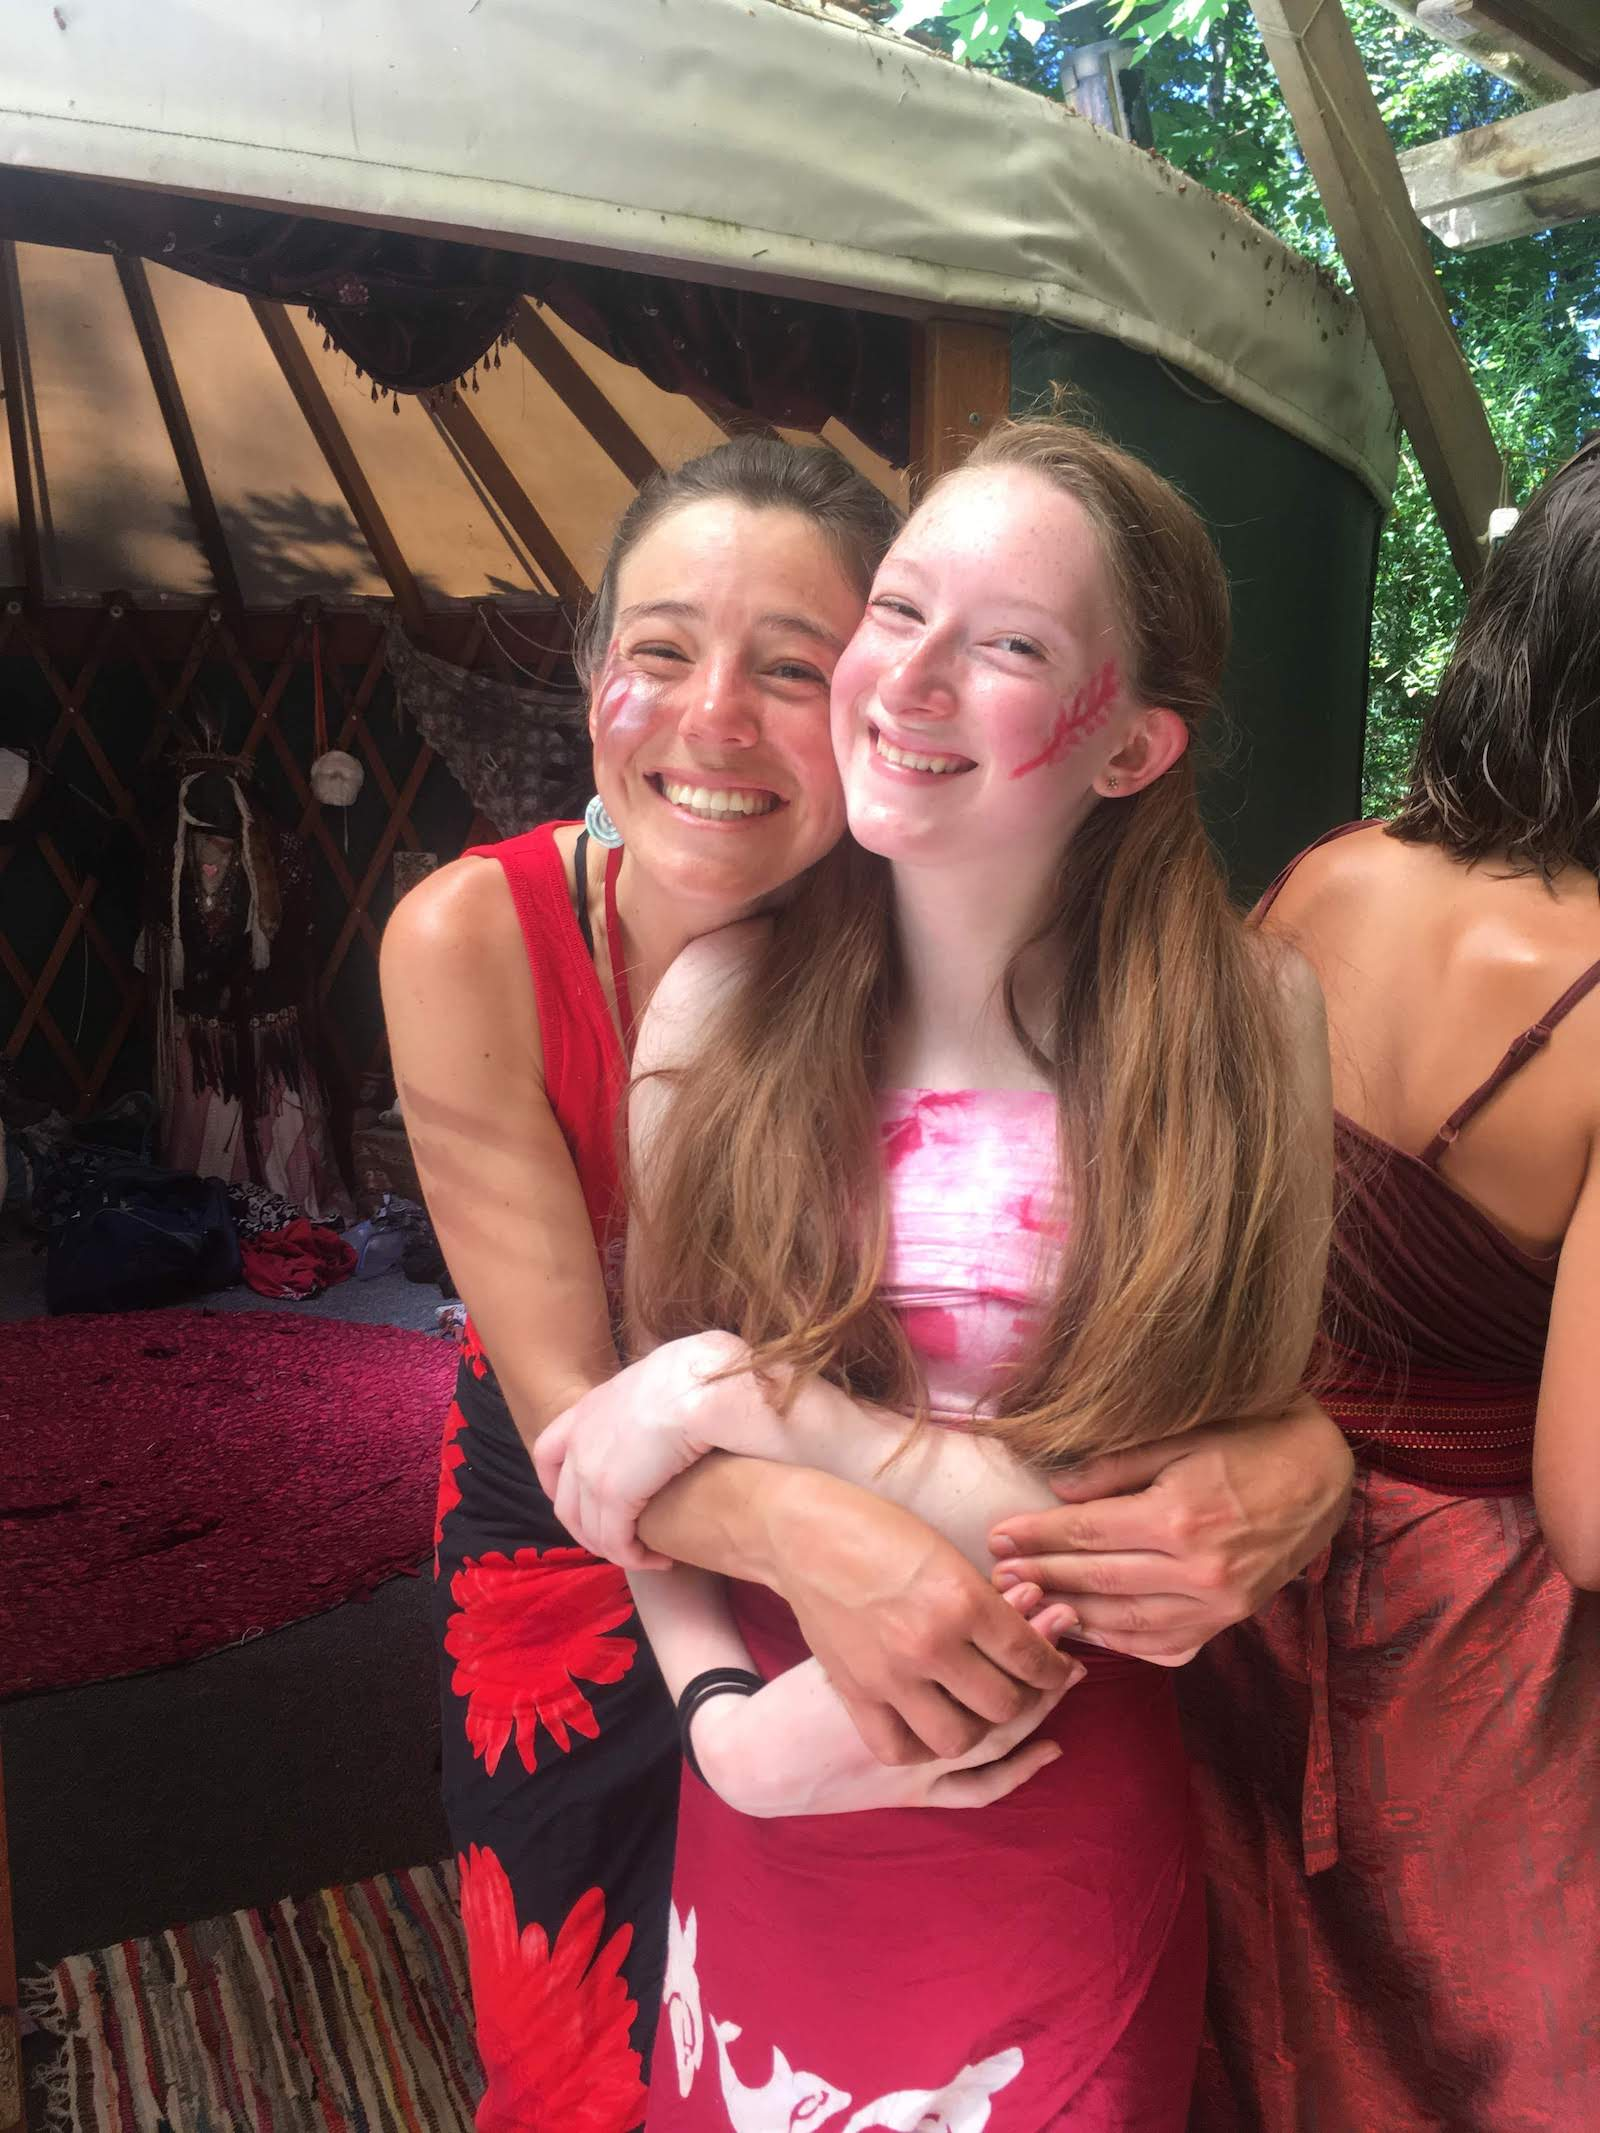 Participants spend a week at a moonlodge, engaging in a rite of passage experience to honor and celebrate the conscious step into young womanhood.